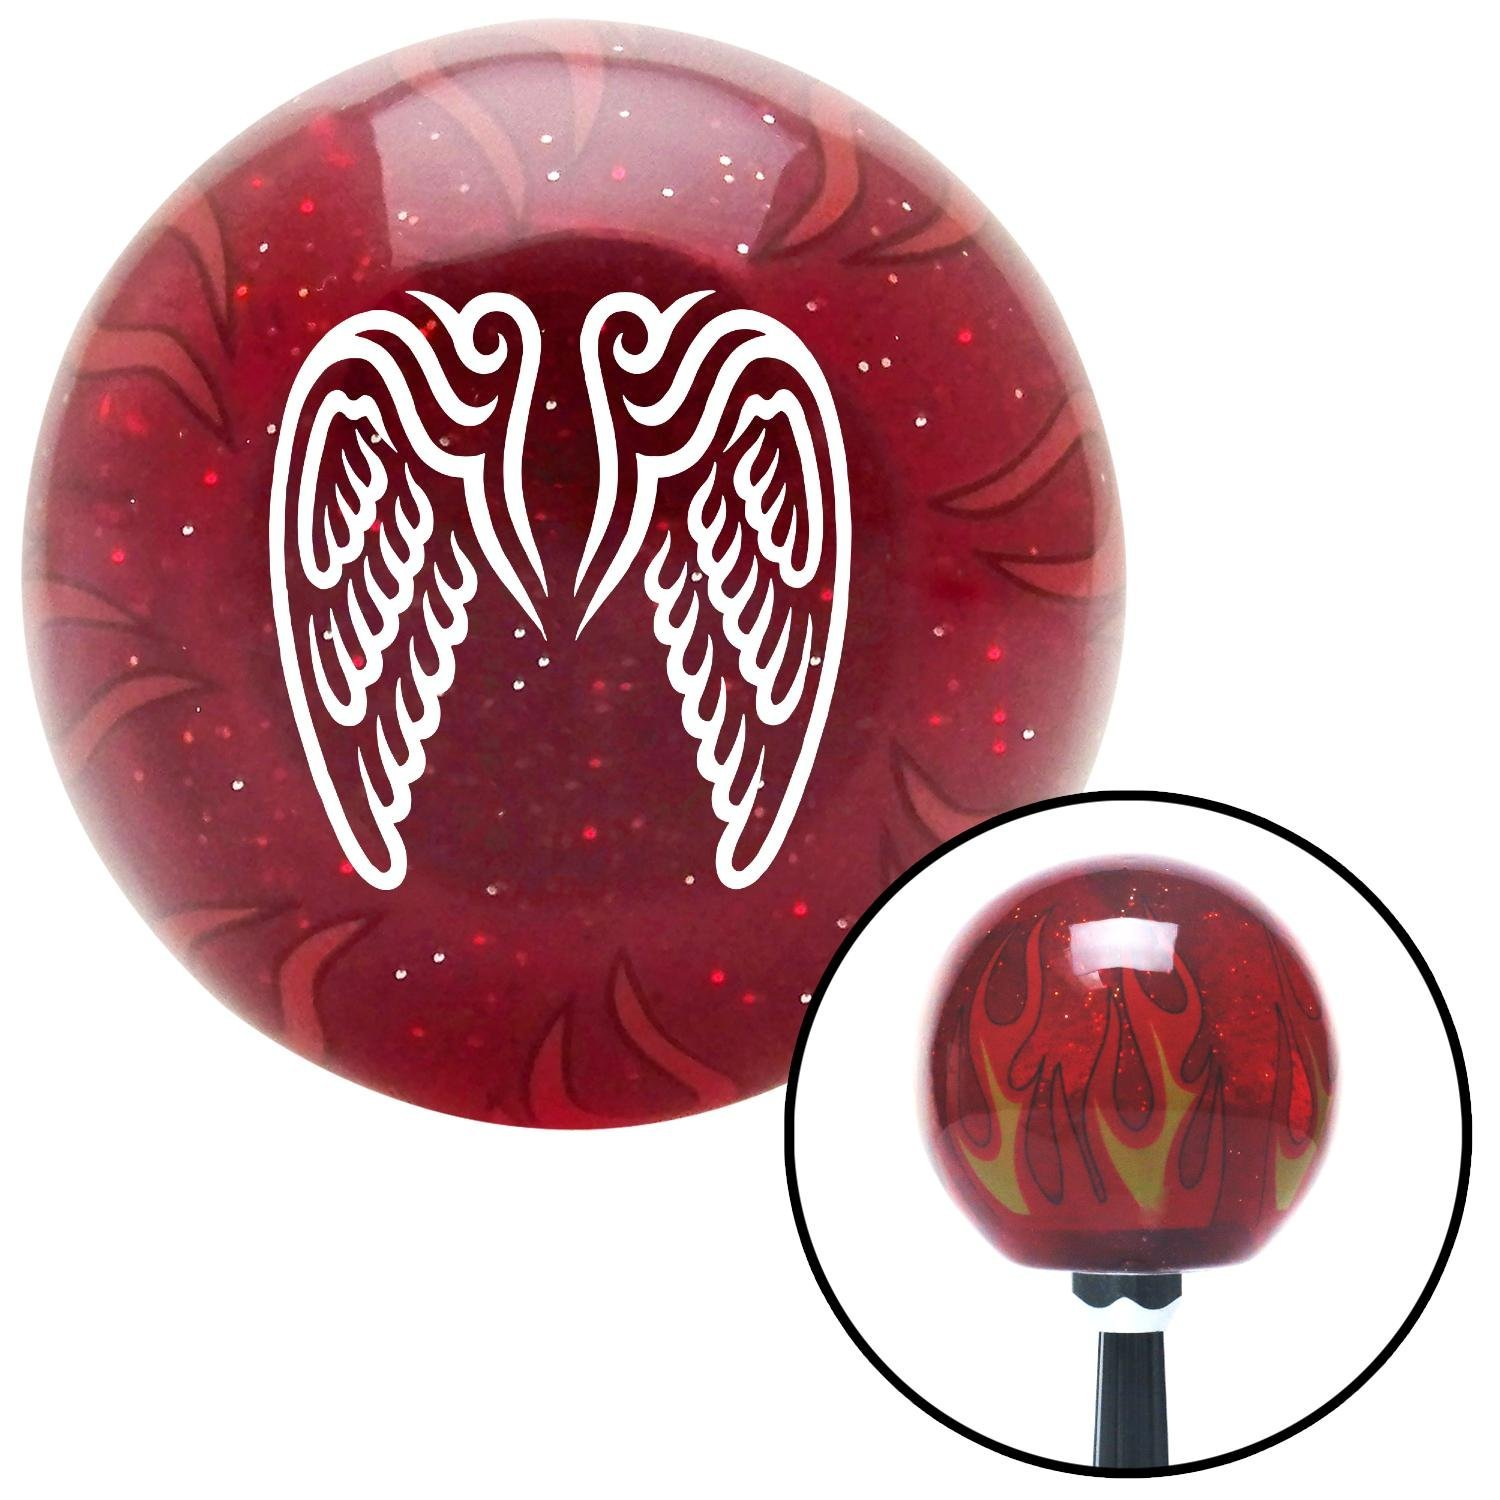 White Wings Conjoined in Lure American Shifter 237239 Red Flame Metal Flake Shift Knob with M16 x 1.5 Insert